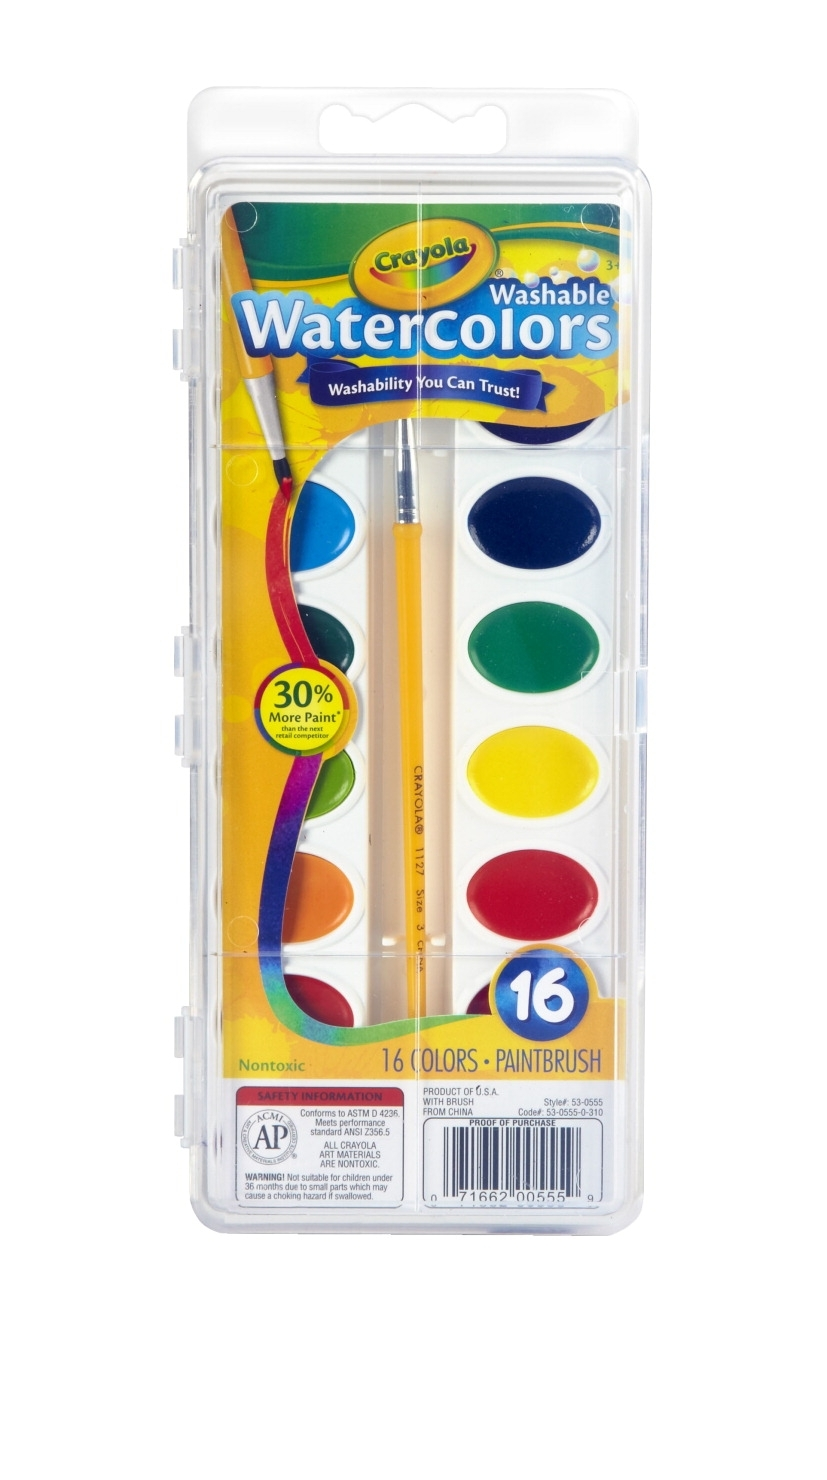 Learning: Play Art Drawing Supplies Washable Paint & Watercolor Paint - 008685 - Crayola Non-toxic Washable Semi-moist Watercolor Paint Set; Plastic Oval Pan; Assorted Color; Set Of 16 008685